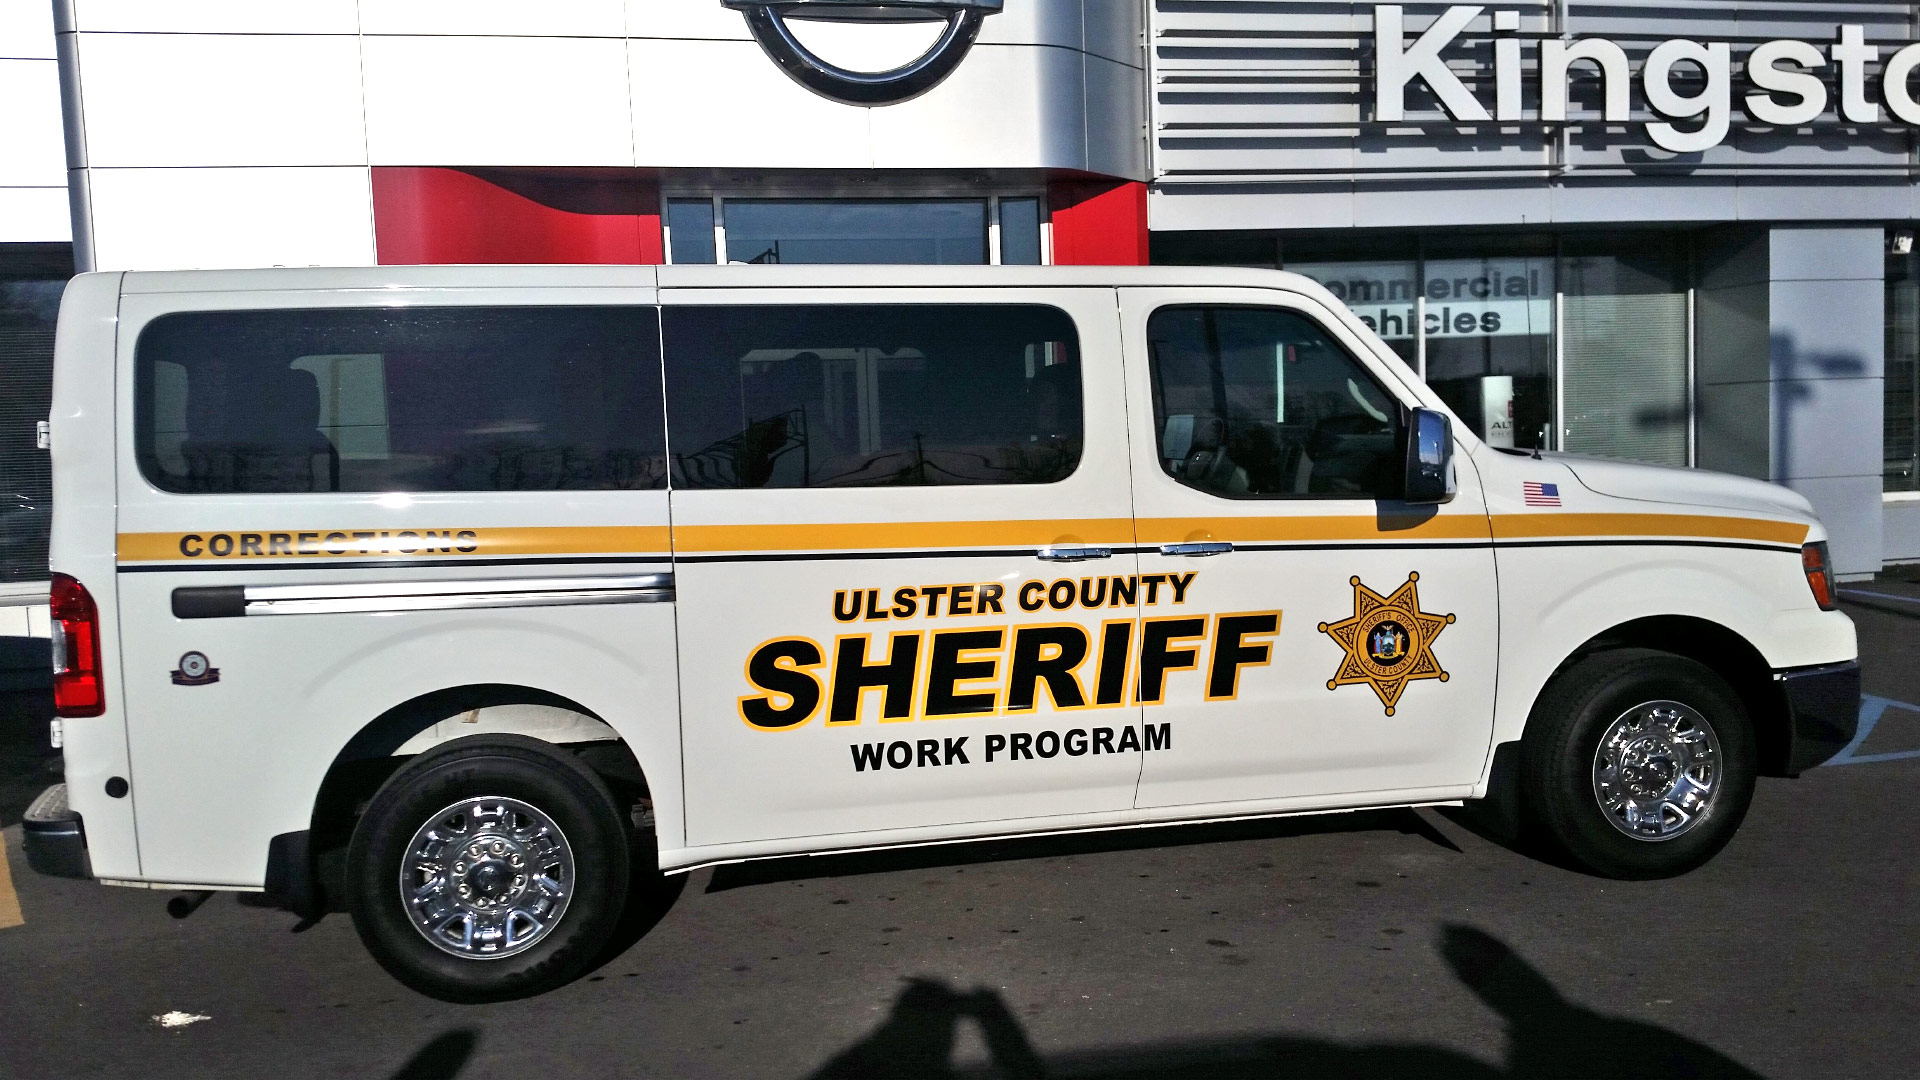 Ulster County Sheriff Work Program Custom Van